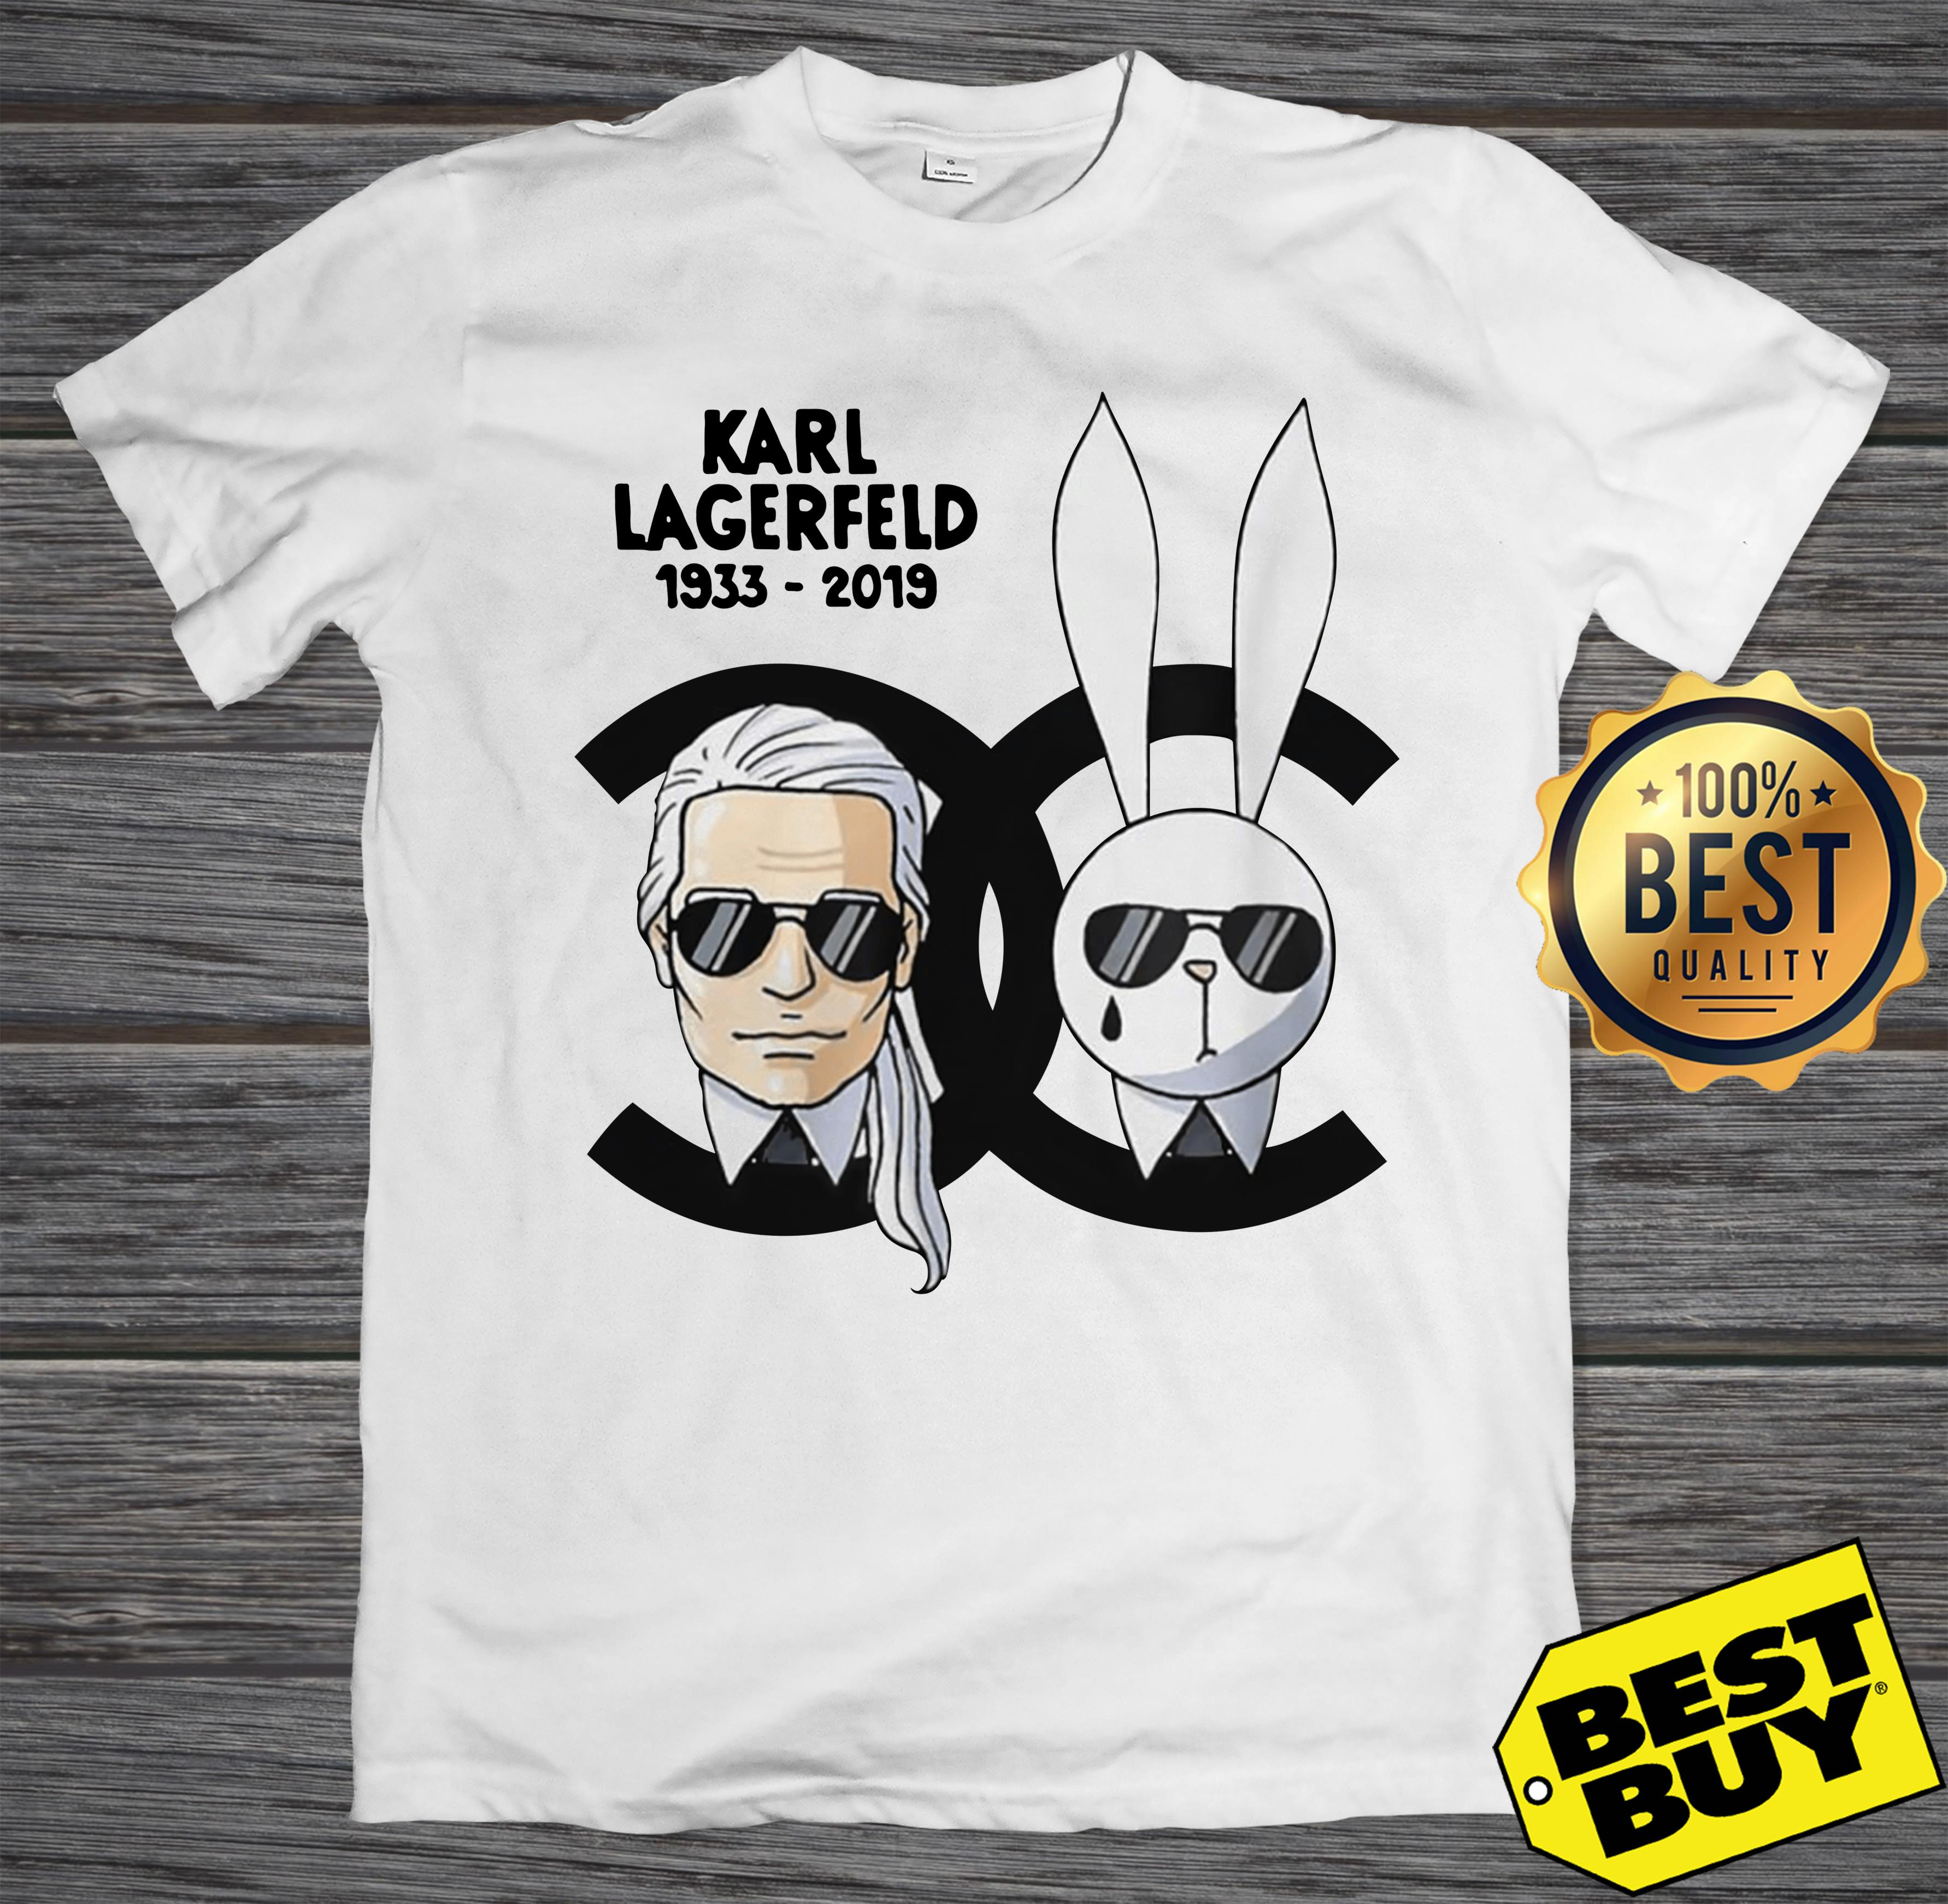 Rip Karl Lagerfeld 1933-2019 and rabbit Chanel tank top